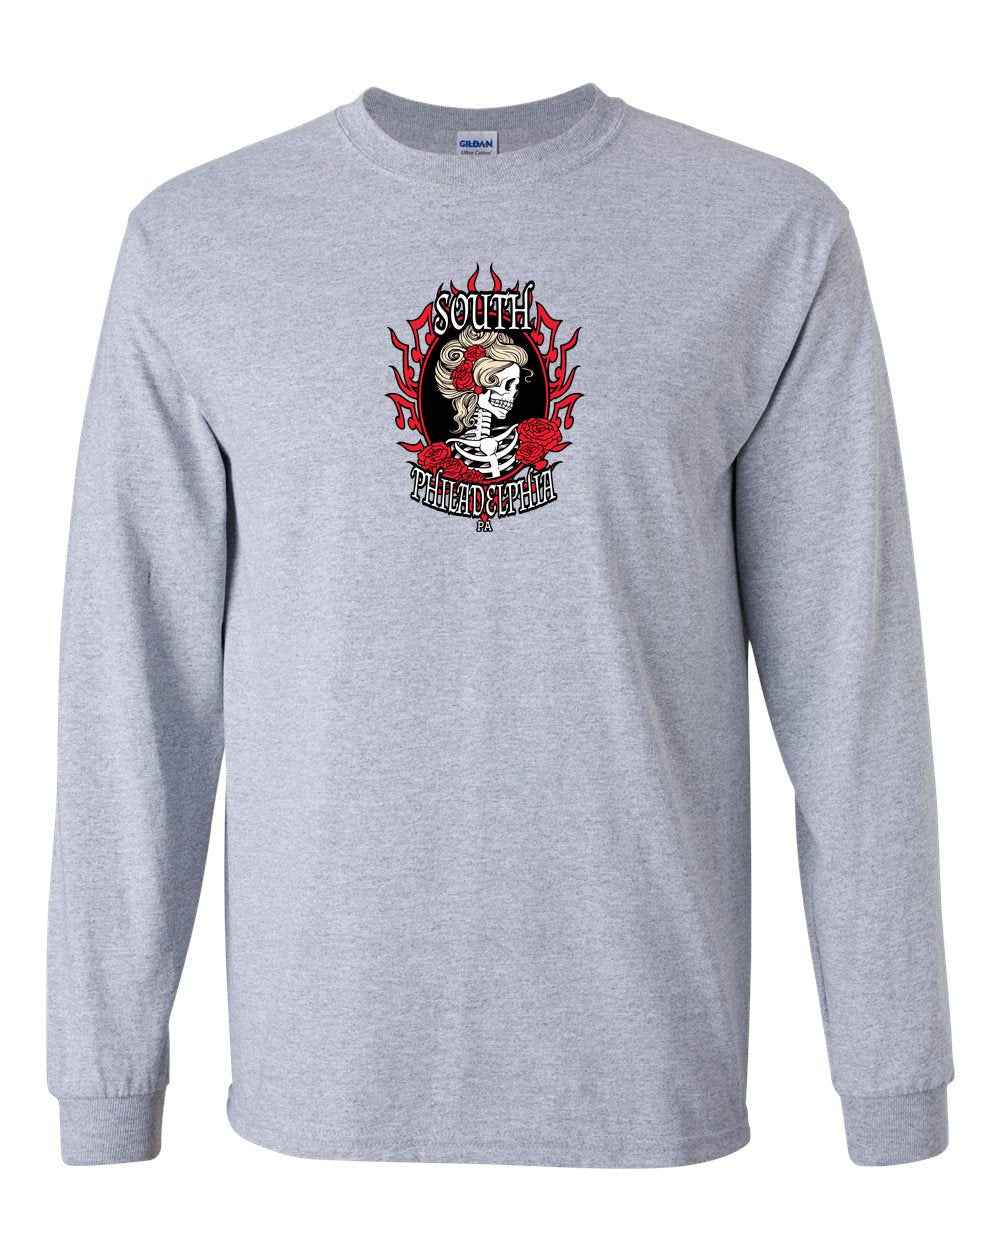 South Philly Dead MENS Long Sleeve Heavy Cotton T-Shirt